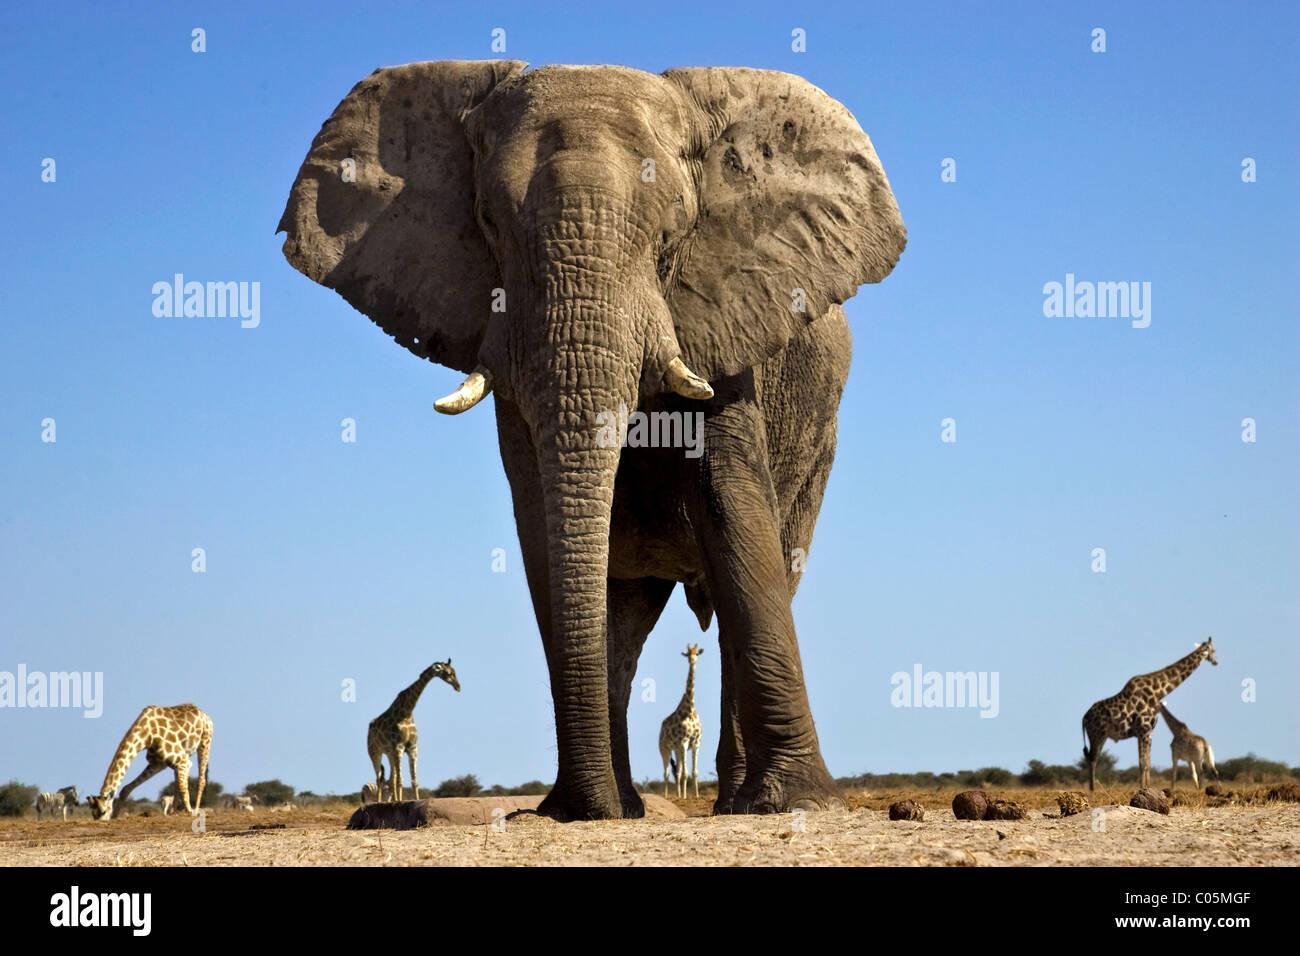 Elephant and Giraffes, Etosha National Park, Namibia - Stock Image